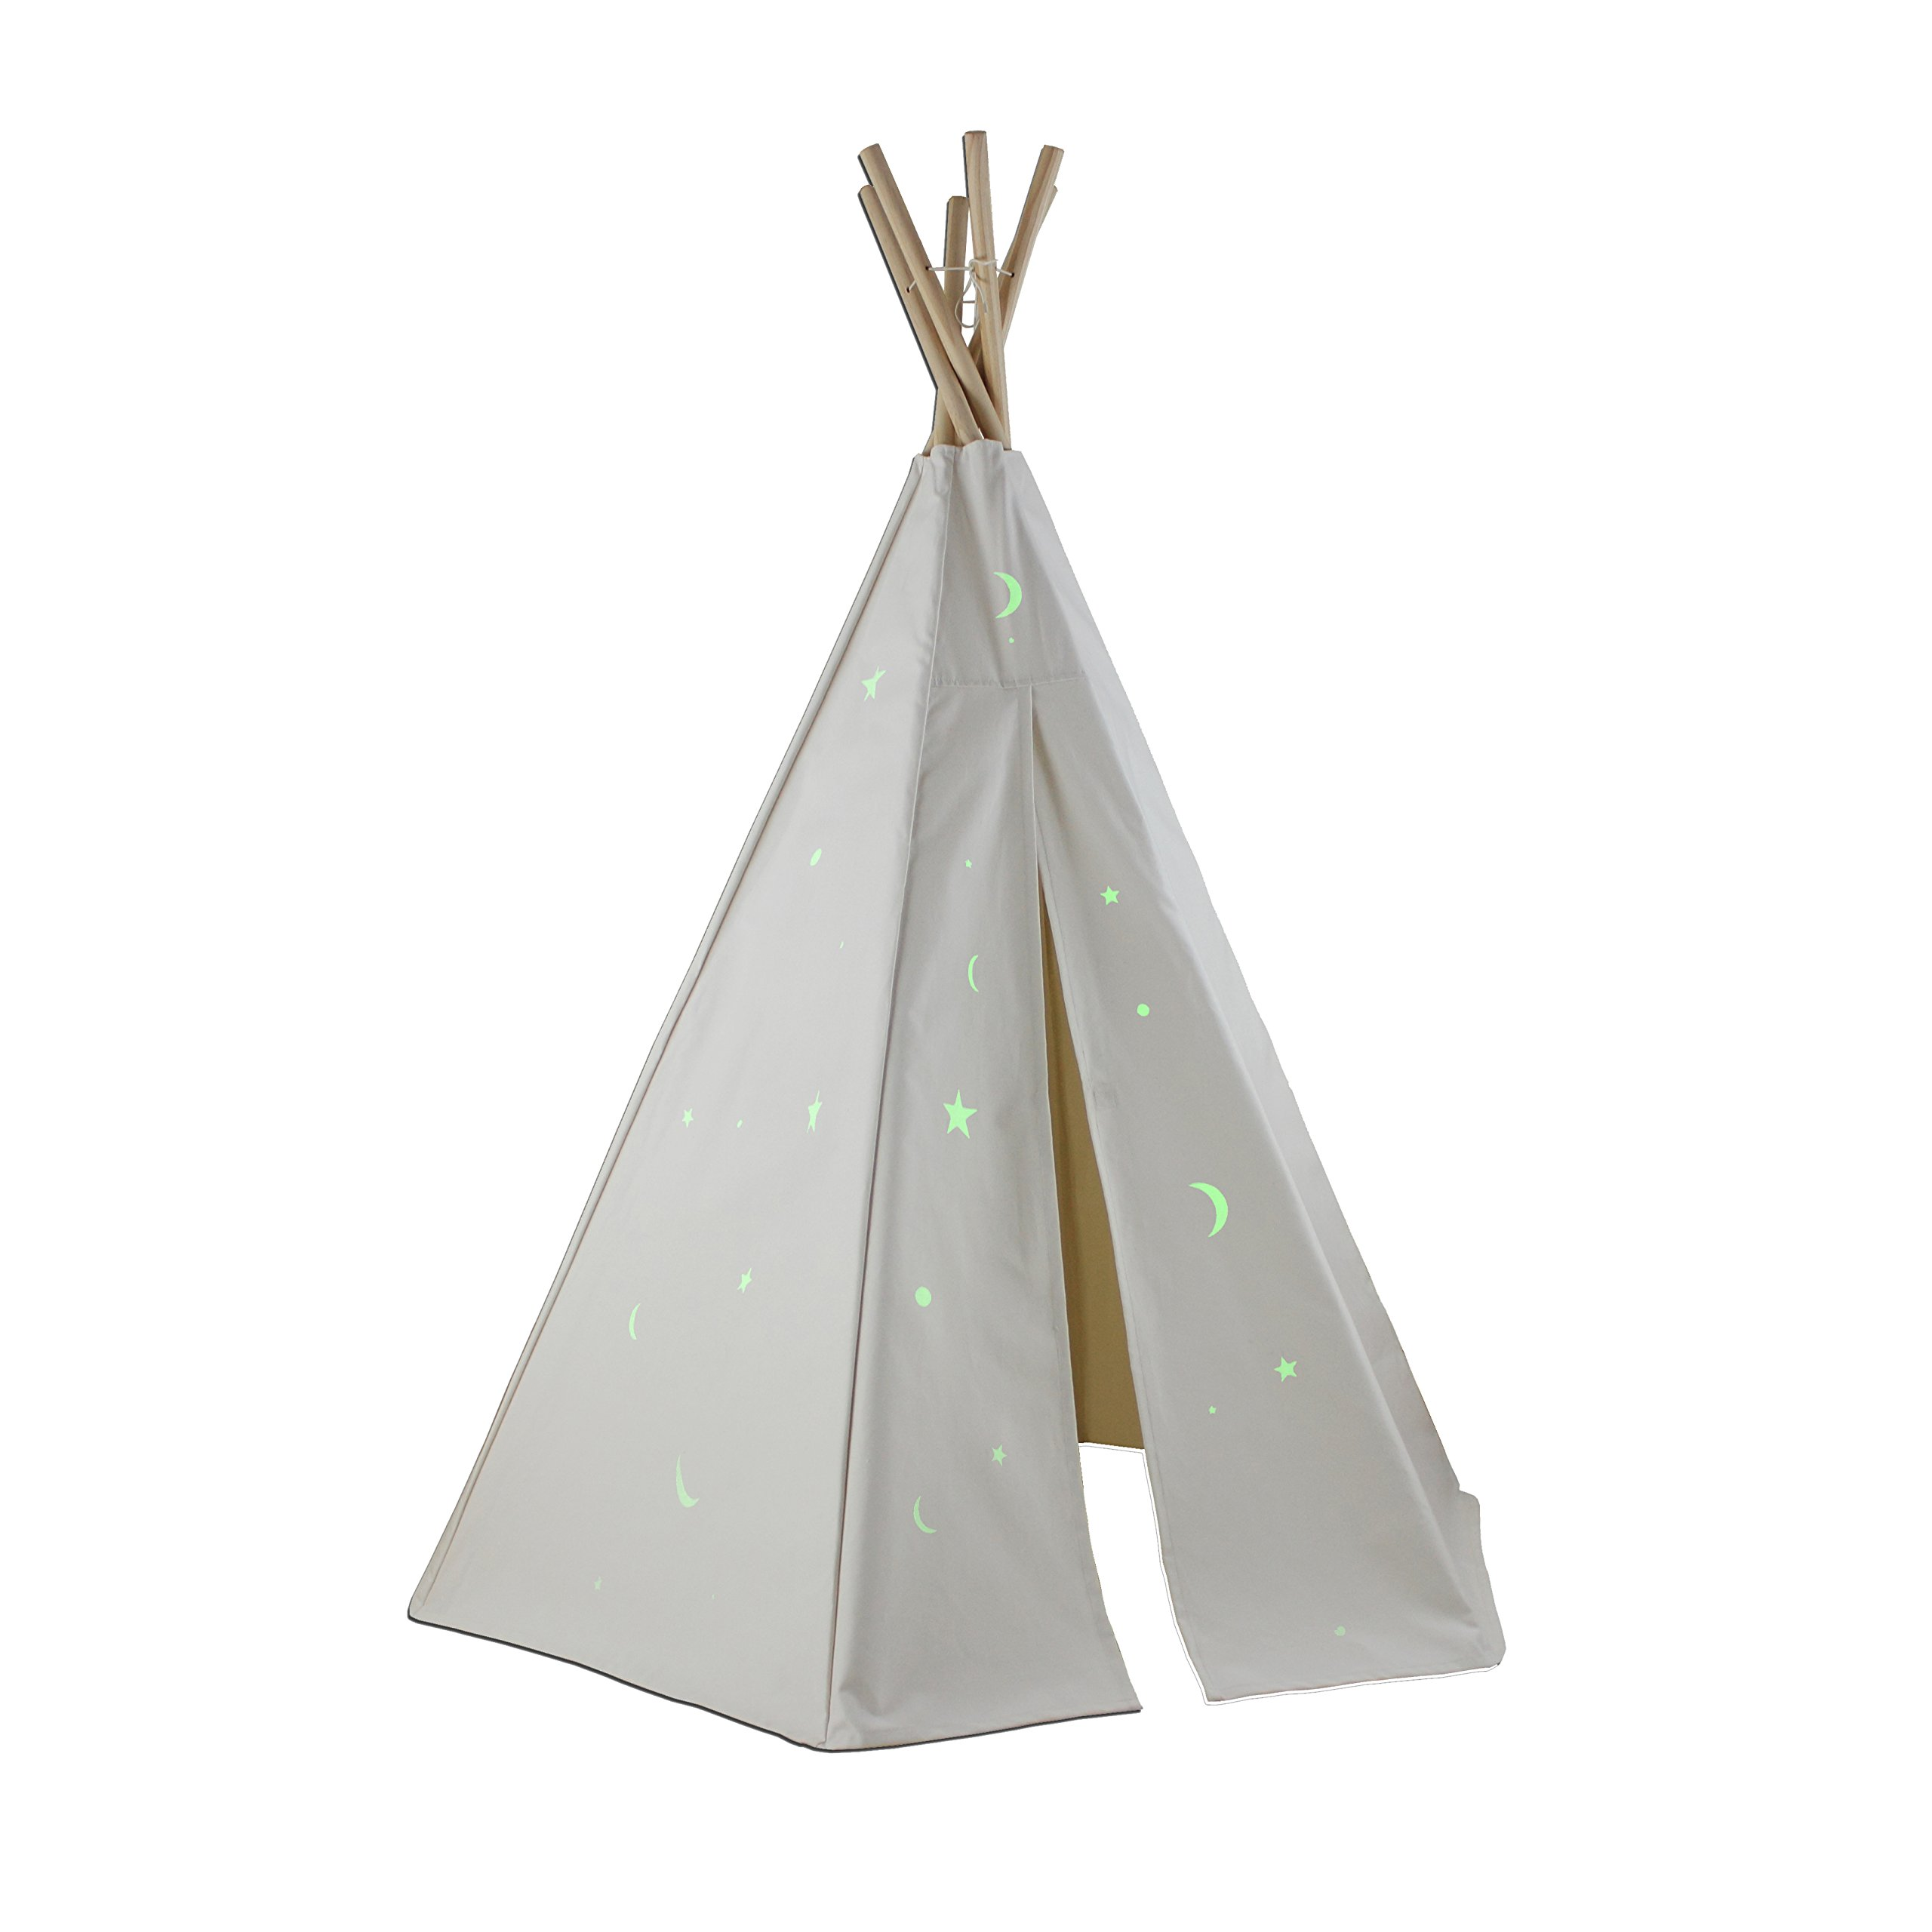 Dexton Great Plains Teepee with Glow in The Dark Stars, 6' by Dexton (Image #1)